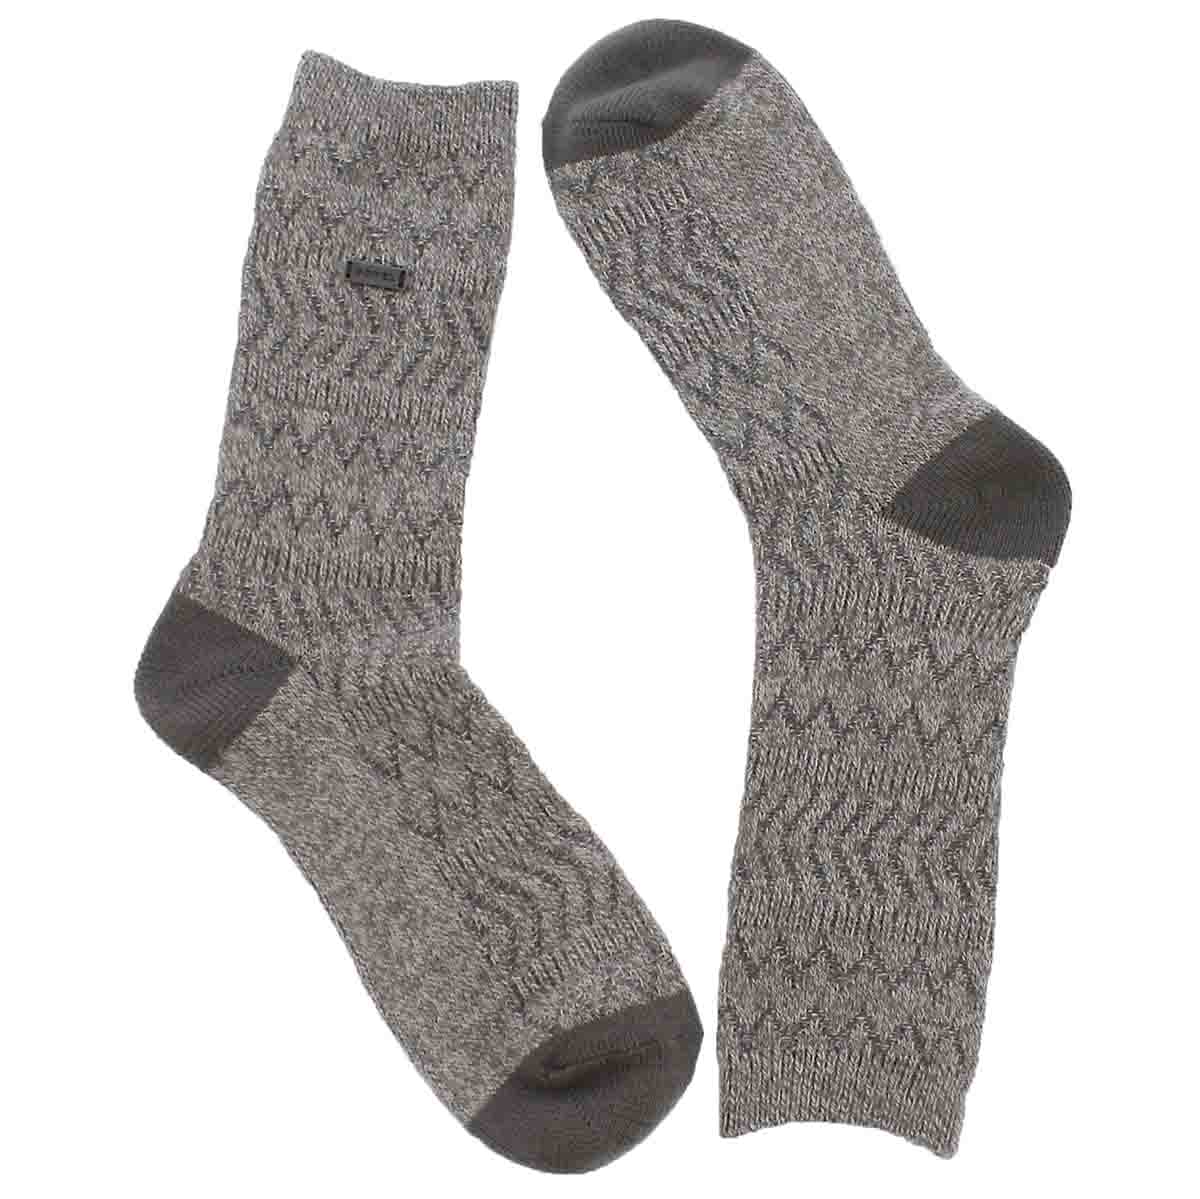 Women's BASIC MERINO WOOL quarry/wht tall socks